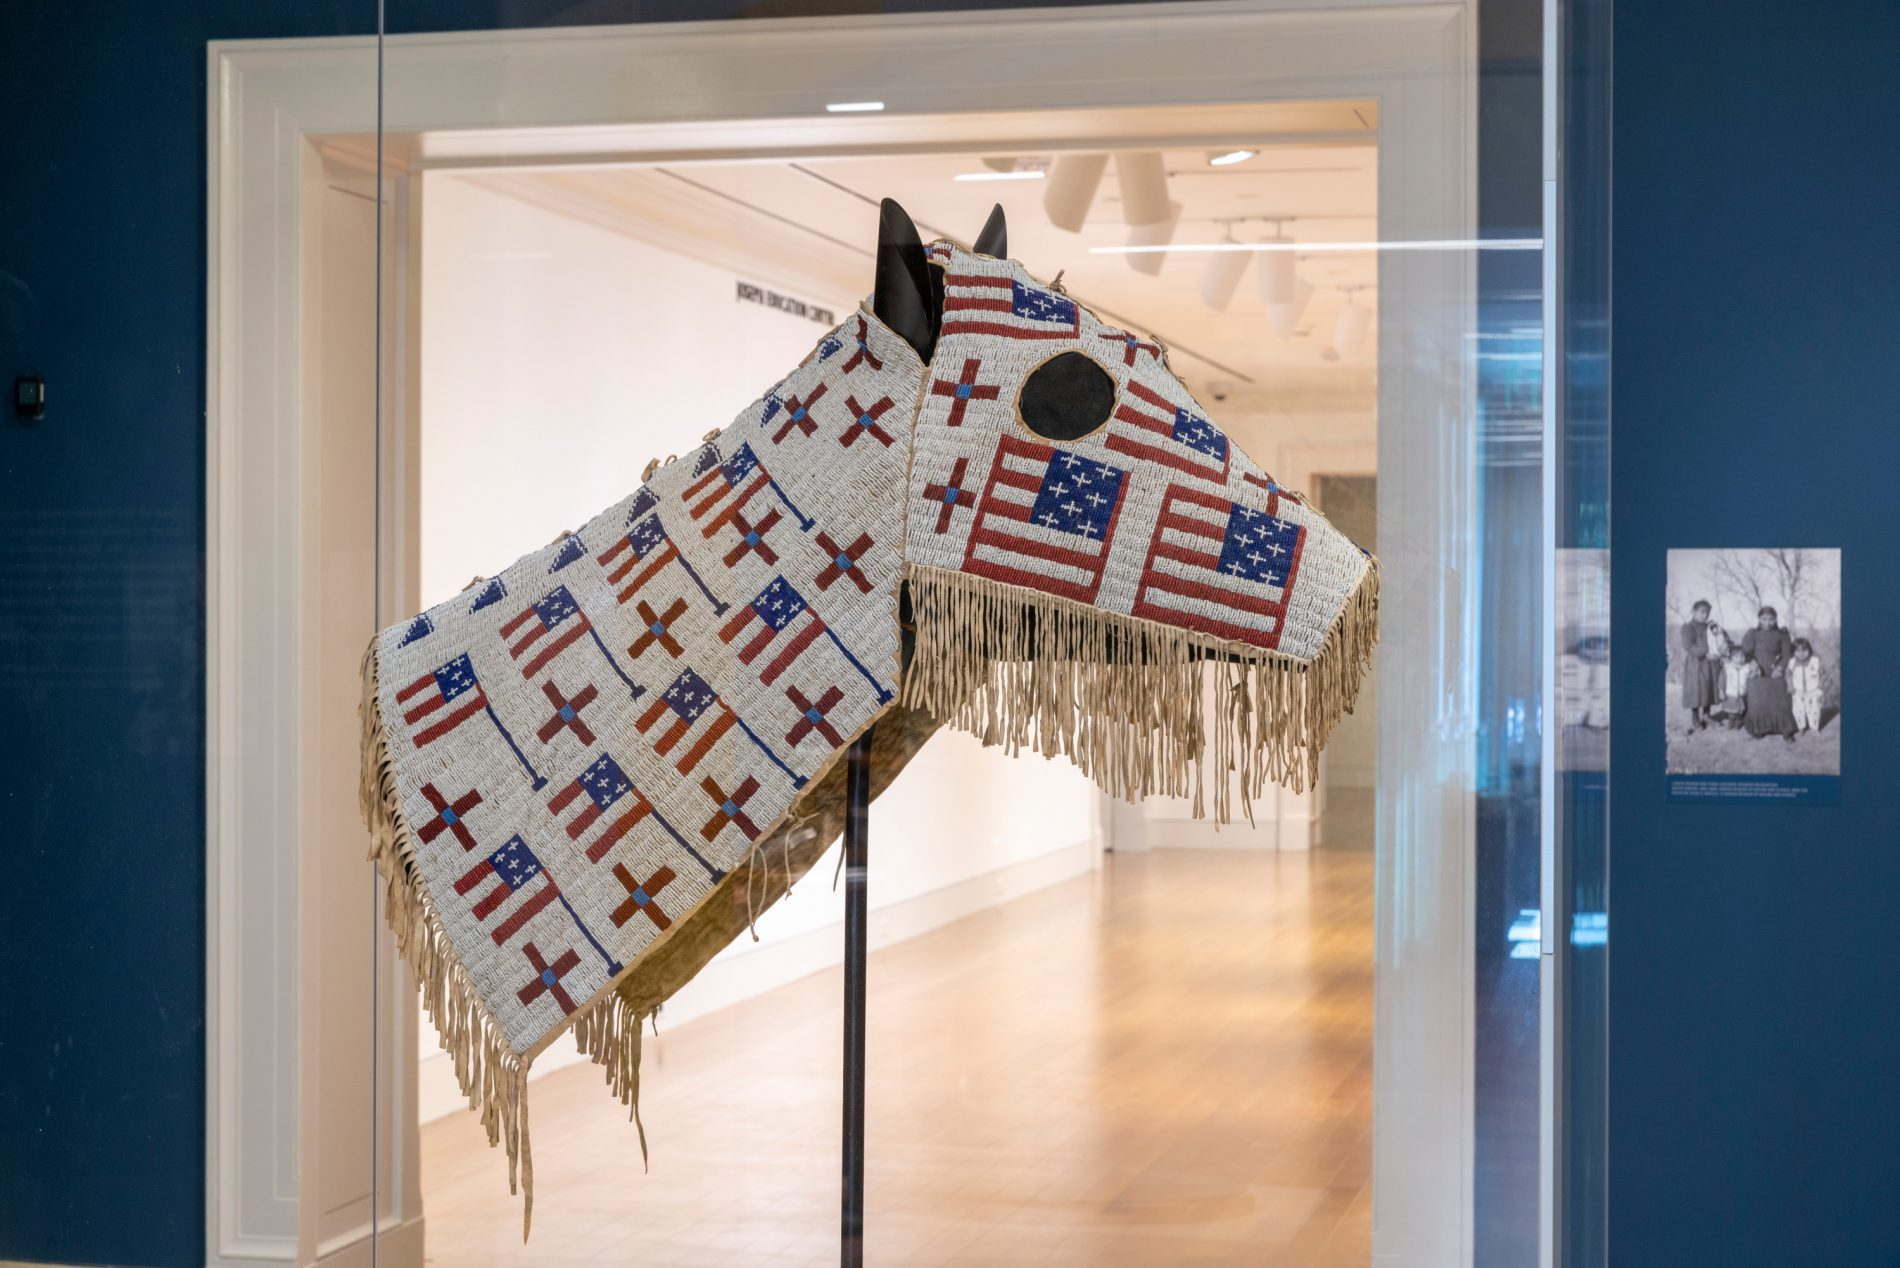 Horse Mask (T0070) 1900 Hide, glass beads 29 × 35 in. (73.7 × 88.9 cm.)